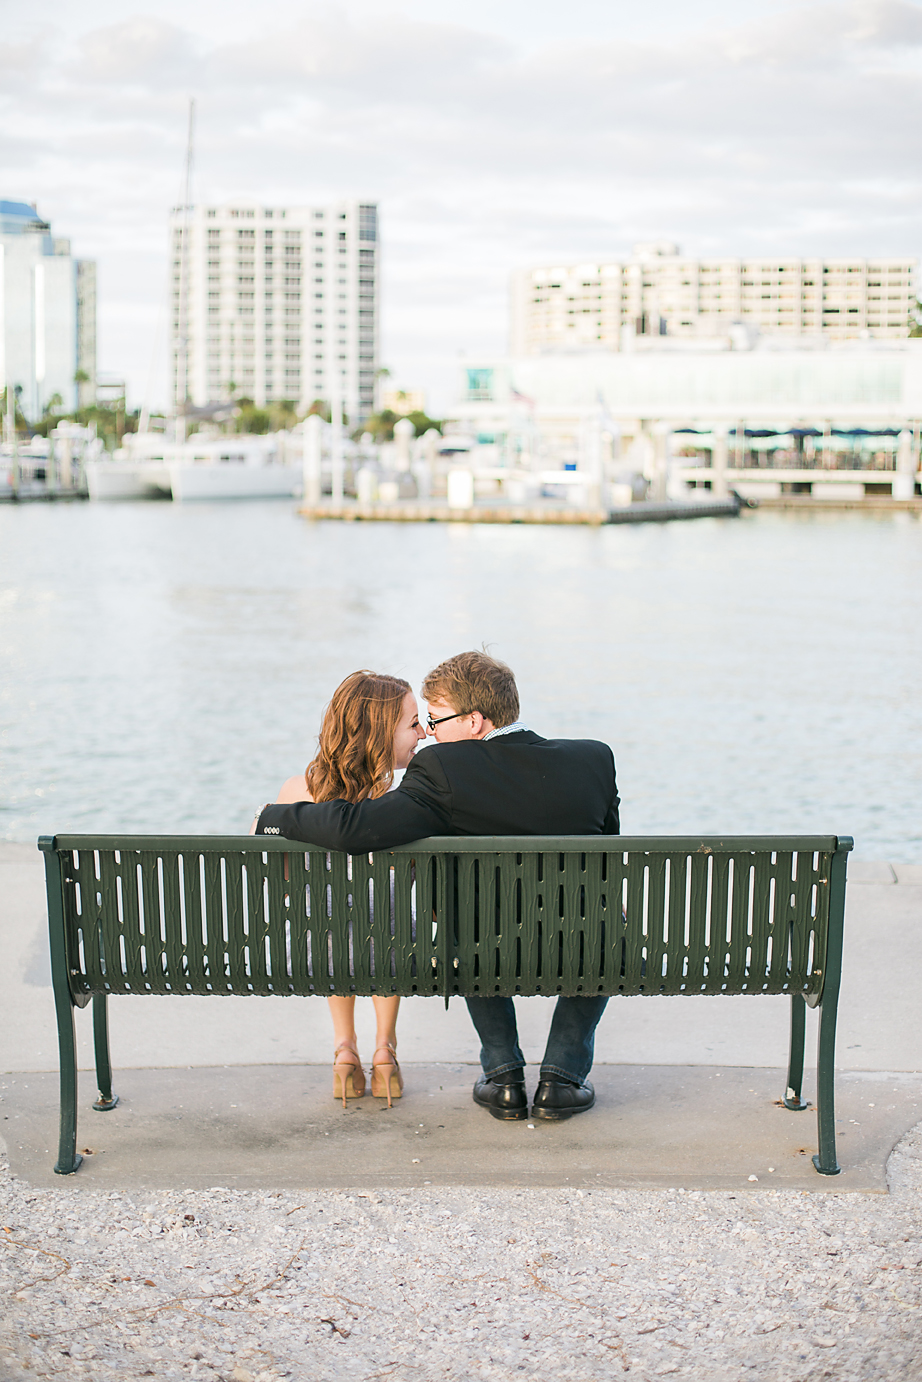 Elizabeth + Michael, Sarasota Engagement Photographer, Sarasota Wedding Photographer, WEB IMAGES Emily & Co. Photography.jpg (150).jpg